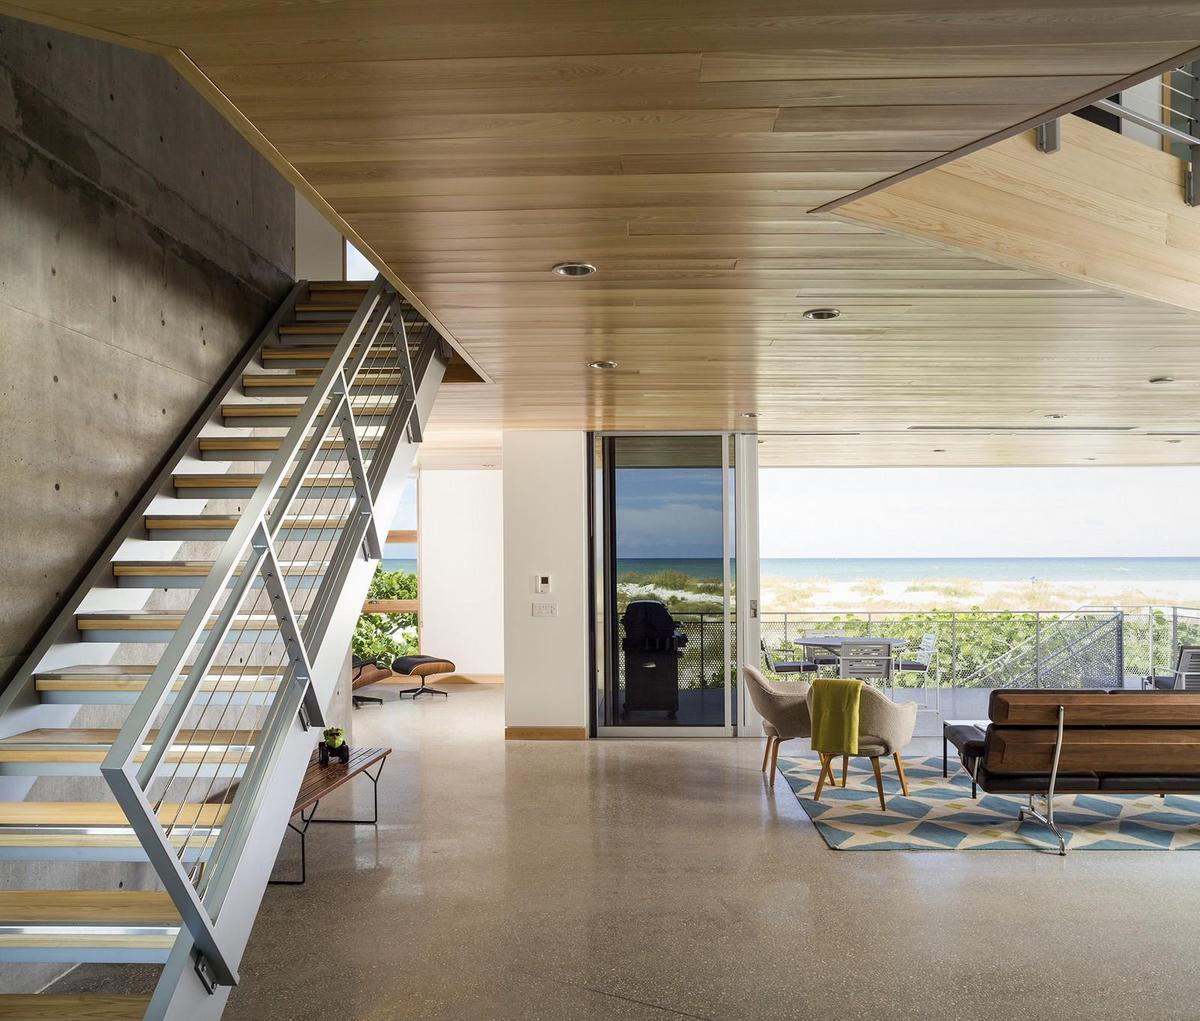 Home Design Ideas Architecture: Beachfront House Built With Poured Concrete To Withstand